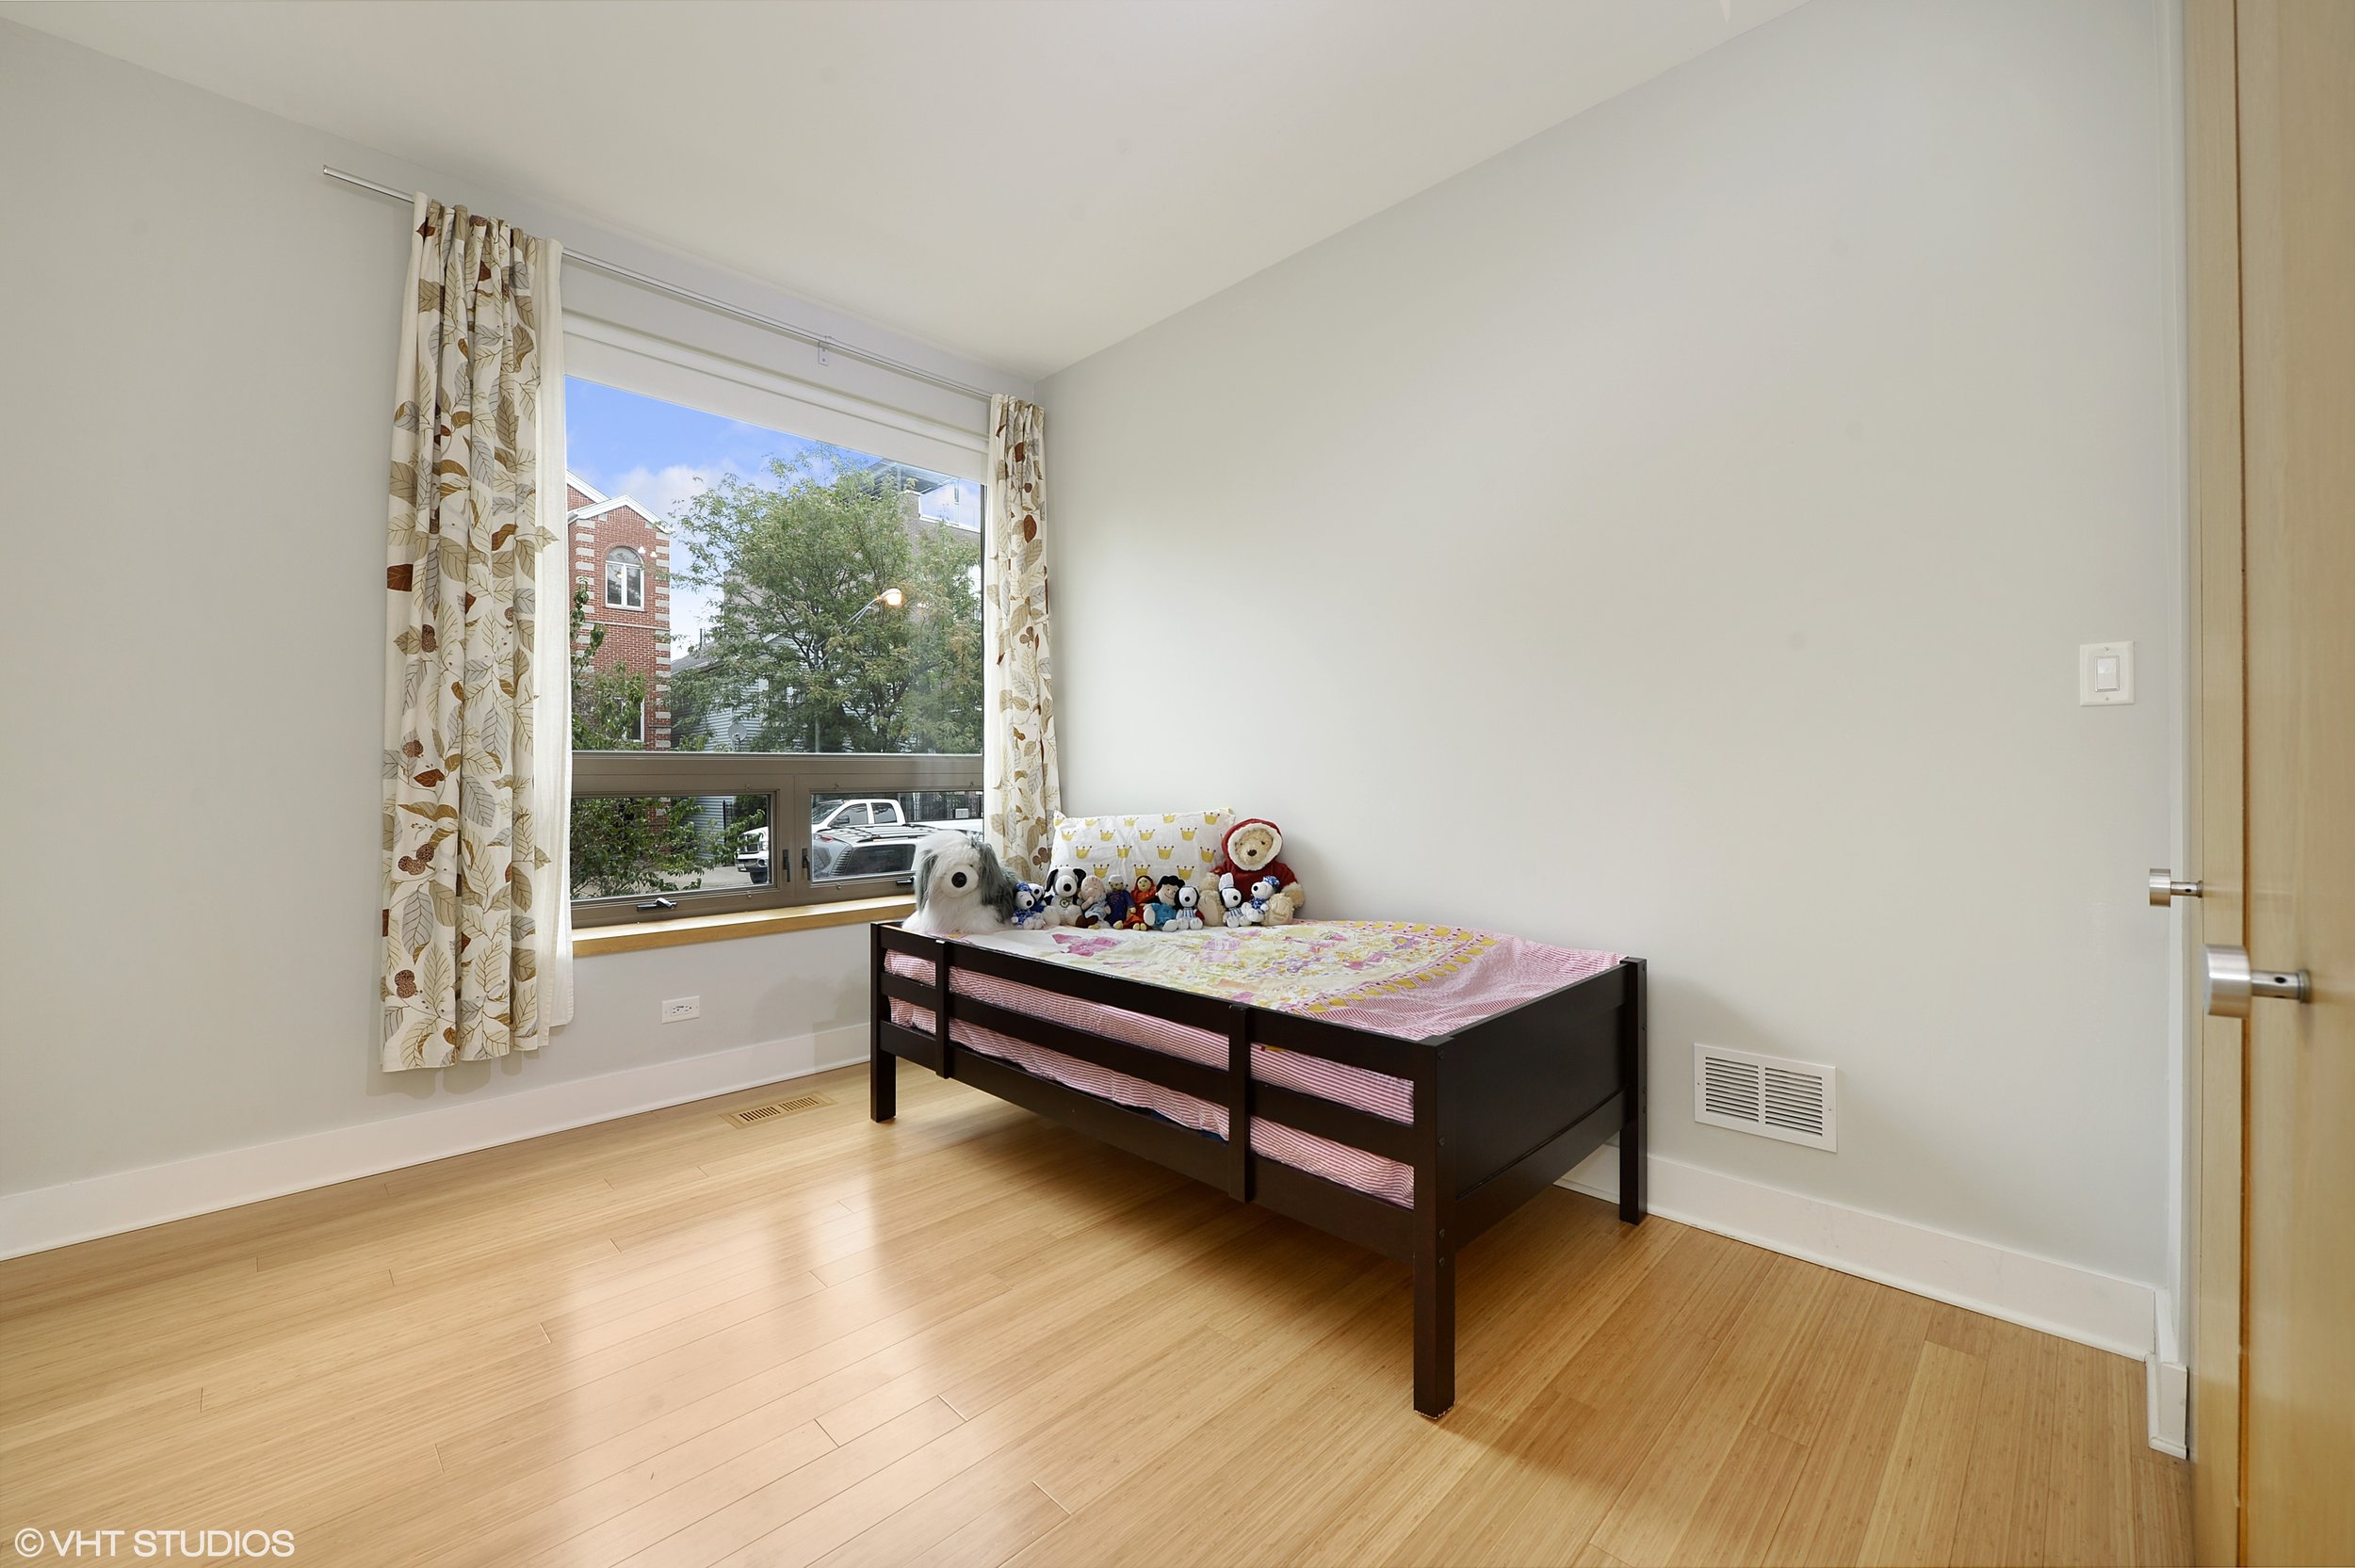 15_1529WestChestnutSt_101_153_2ndBedroom_HiRes.jpg